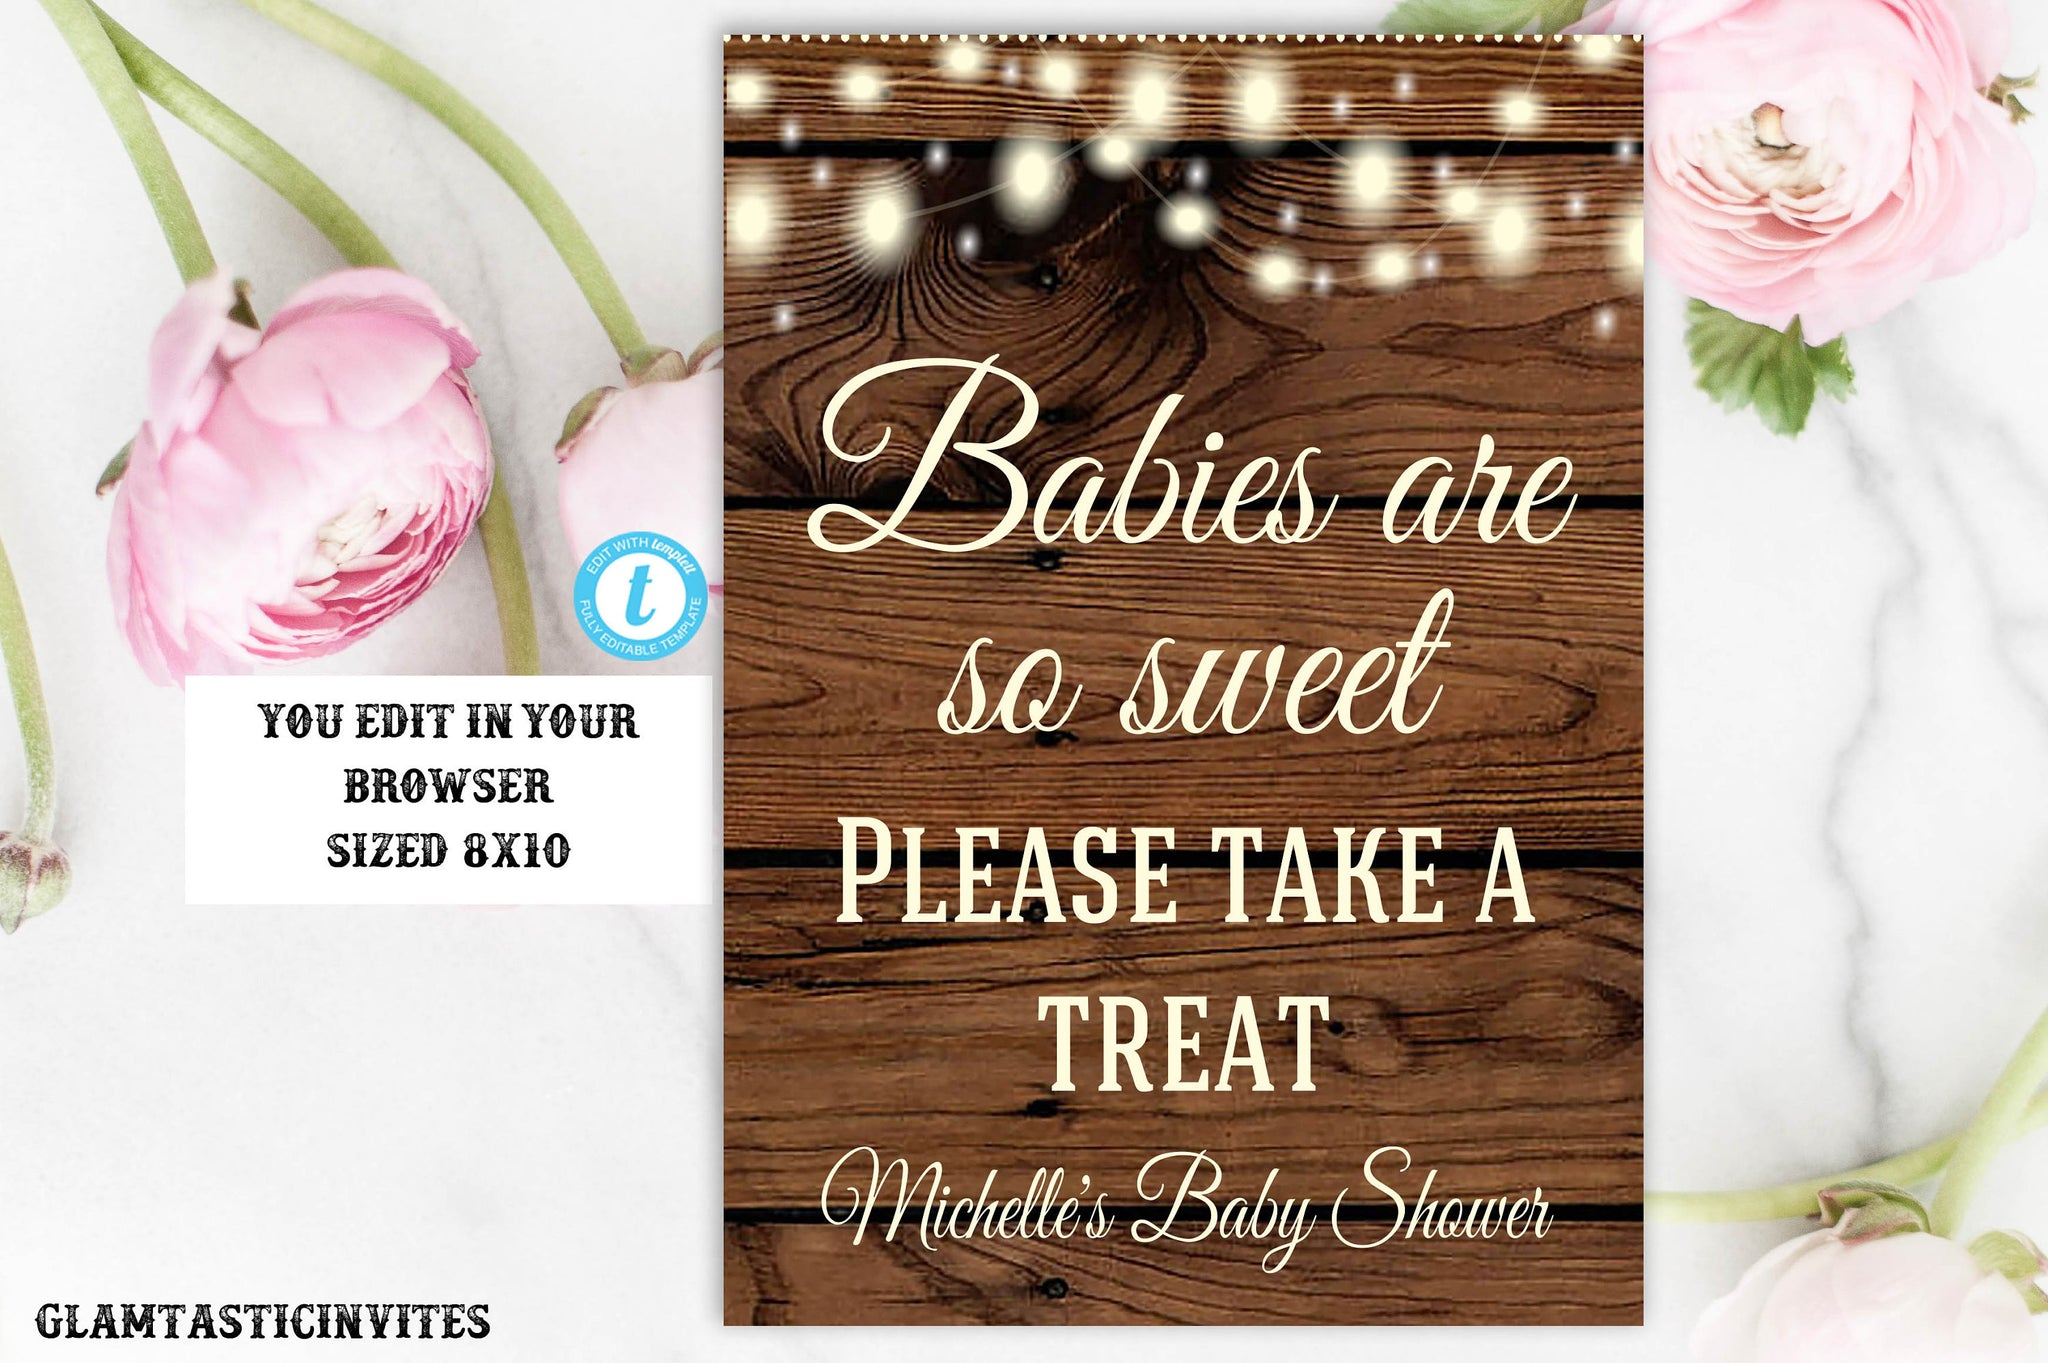 Rustic Baby Shower Sign Template, Baby Shower Favors Sign, Babies are Sweet Take a Treat Sign, Editable Baby Shower Sign, Instant Download